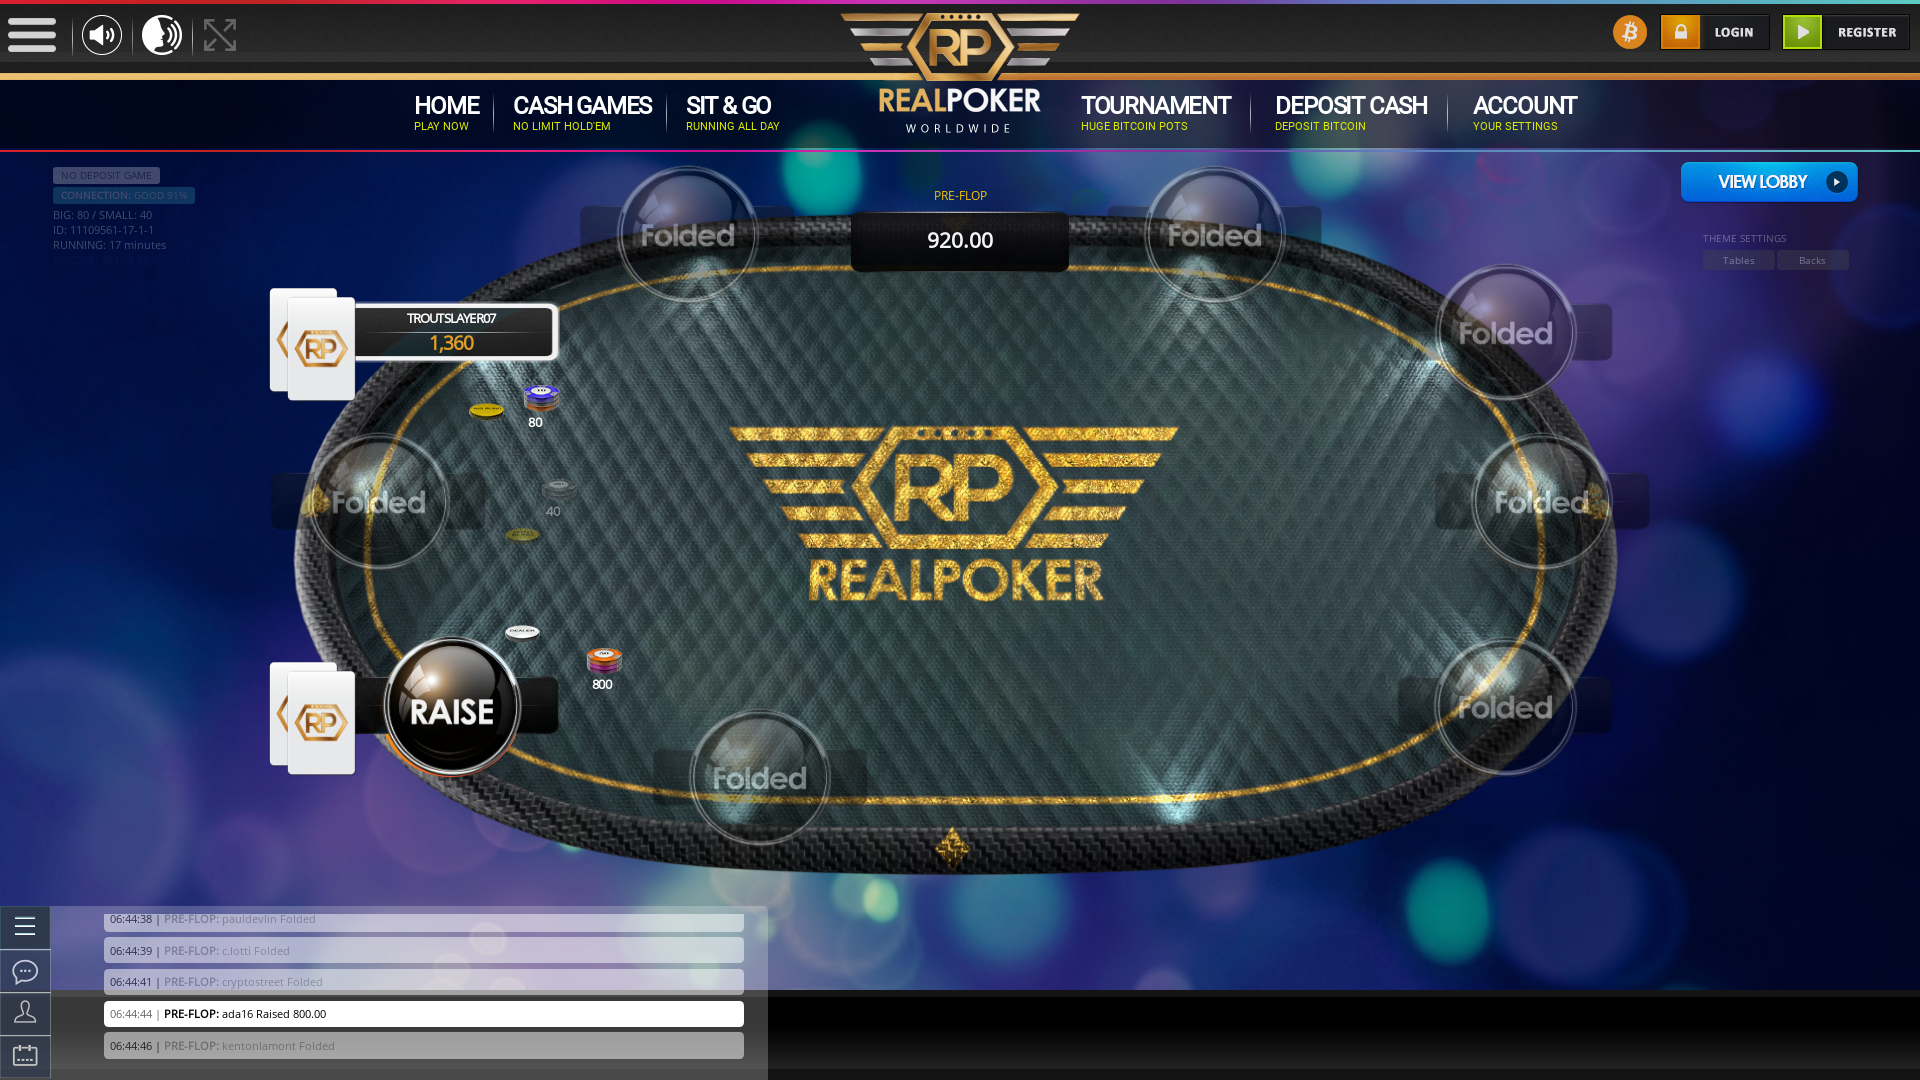 Maracaibo Cryptocurrency Poker